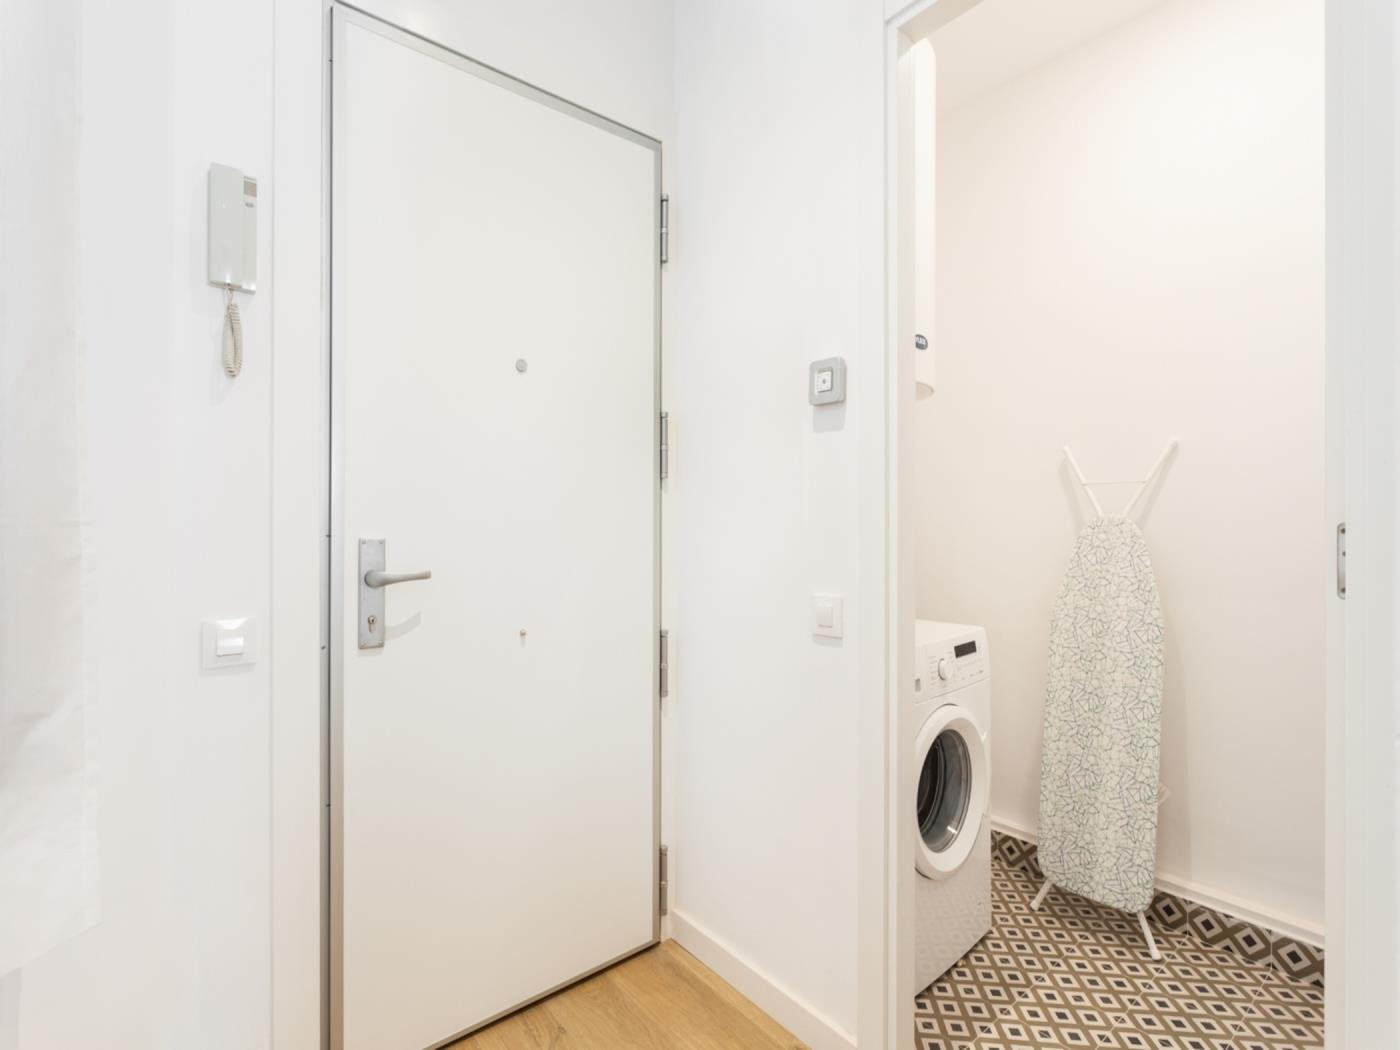 Charmant appartement pour location long terme dans le centre pour 4 - My Space Barcelona Appartements